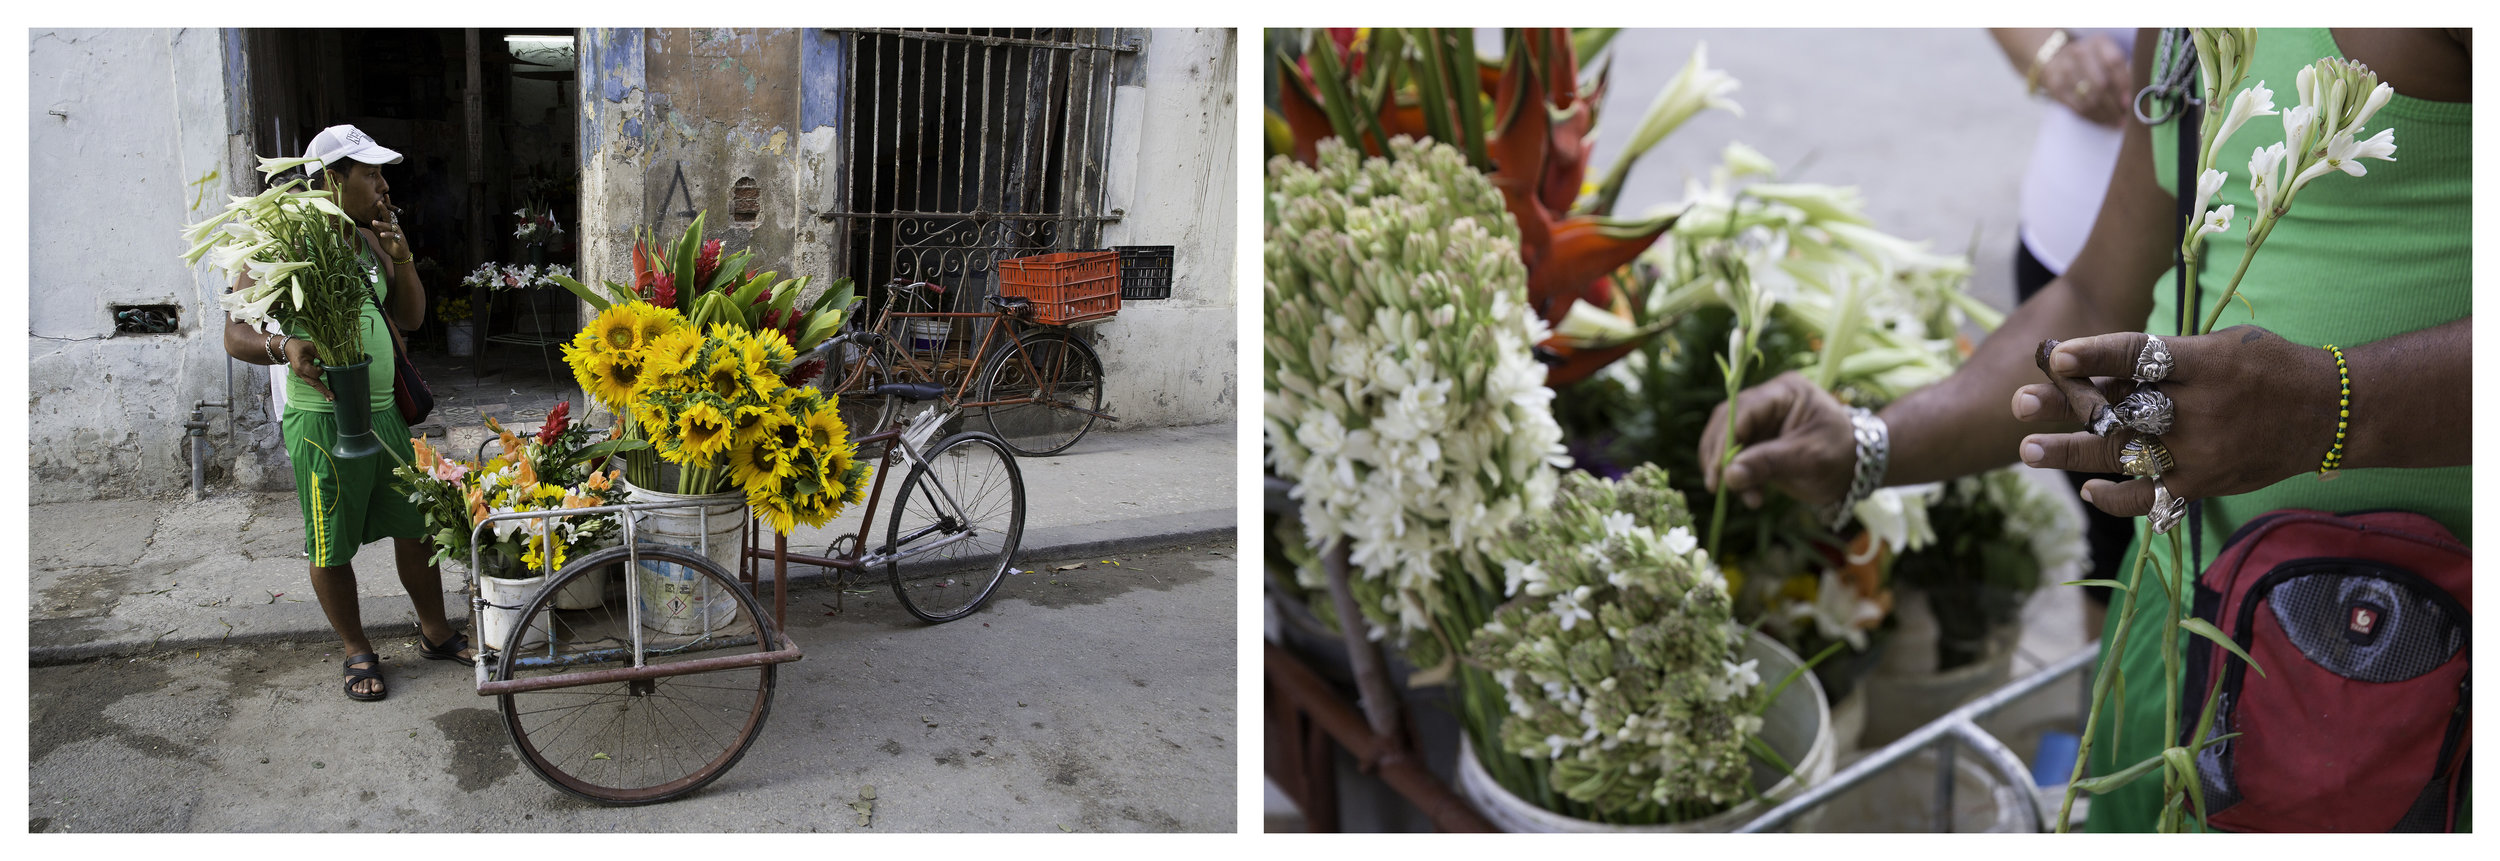 FLOWER VENDOR DIPTYCH.jpg